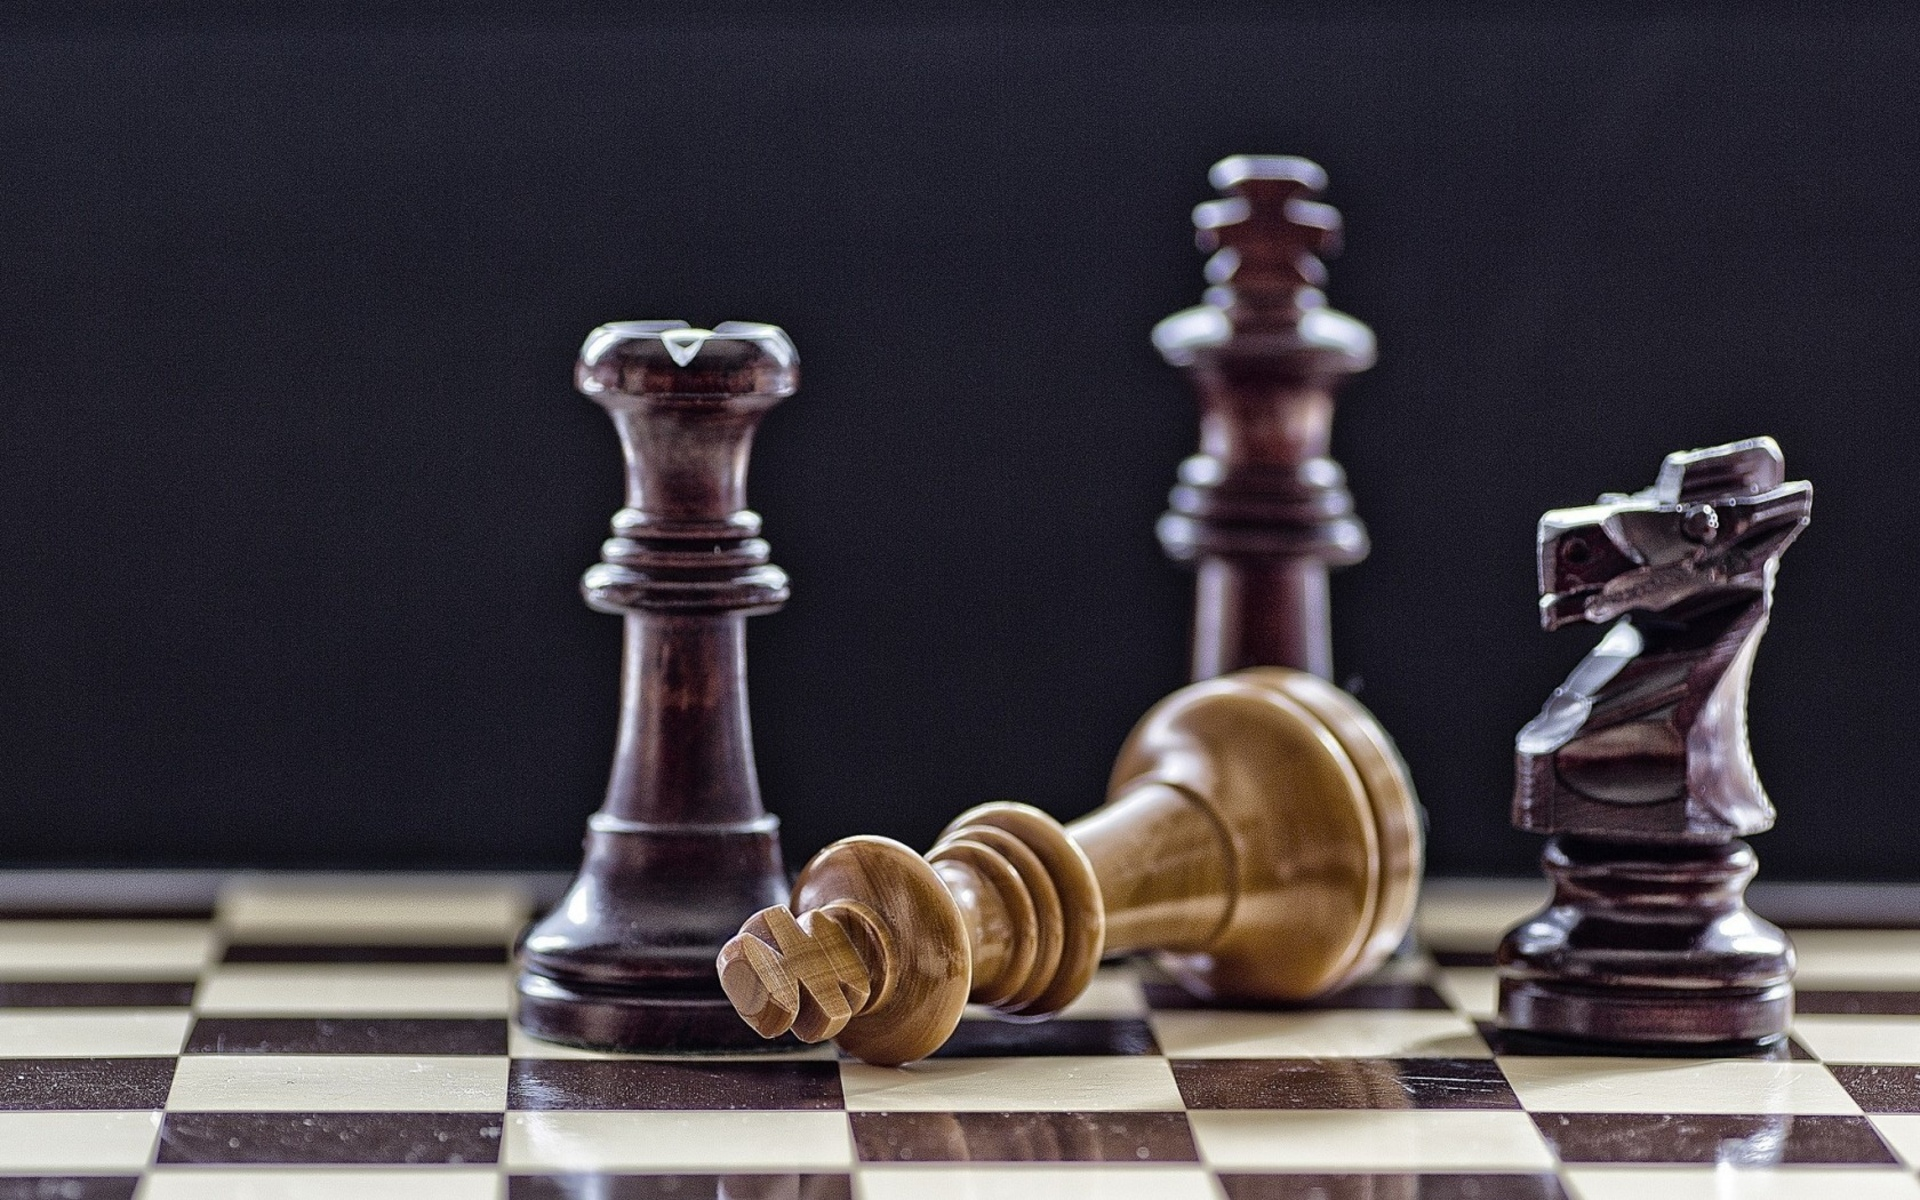 Chess Computer Wallpapers, Desktop Backgrounds | 1920x1200 ...